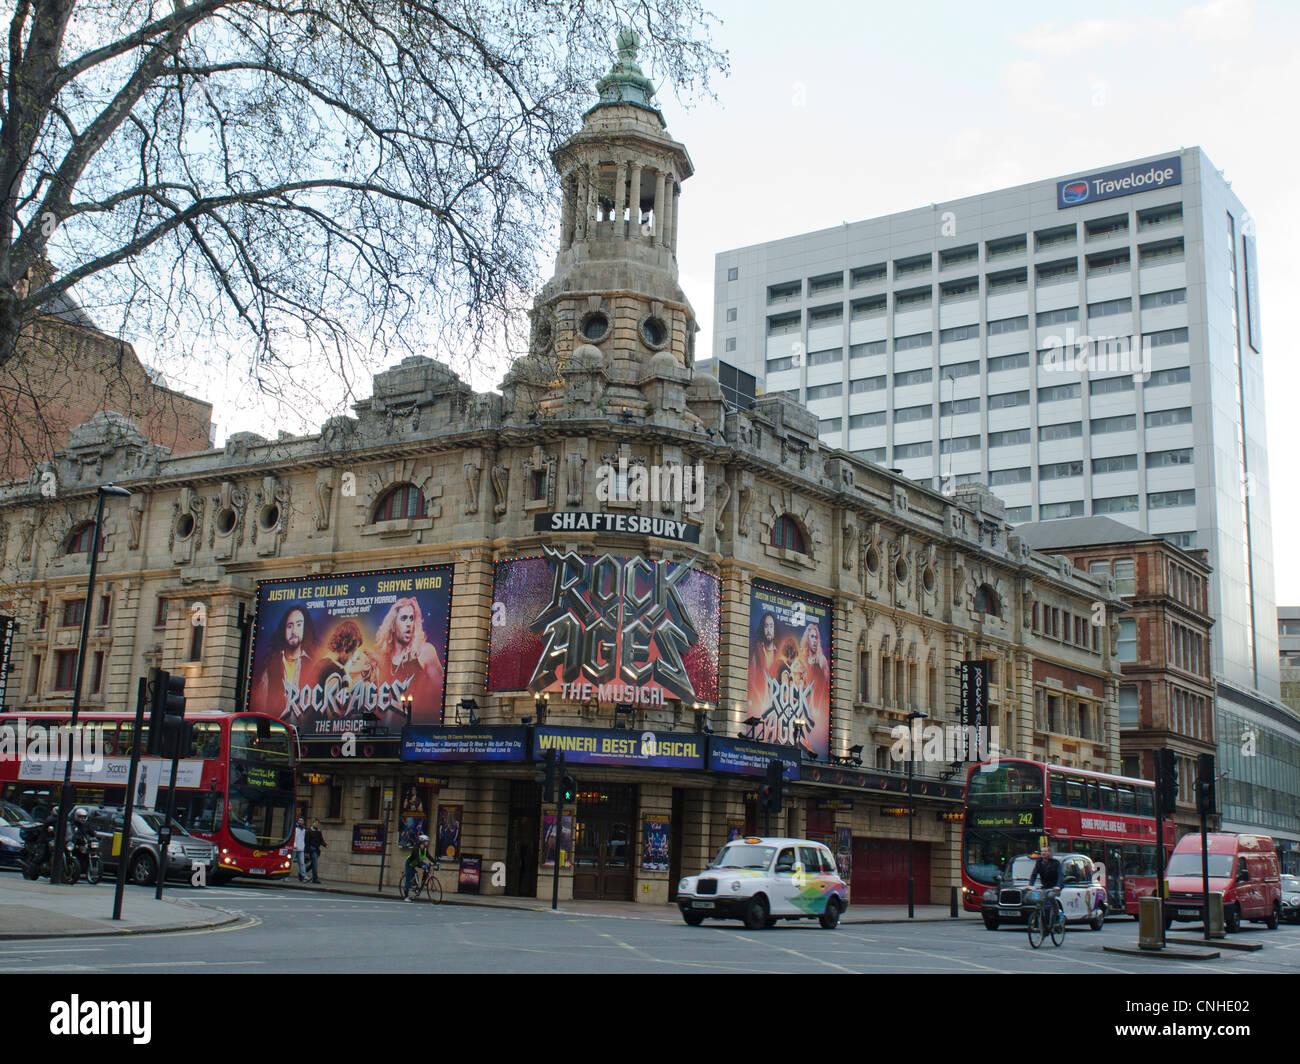 Shaftesbury Theatre billboard for Rock of ages the musical. Travelodge behind - Stock Image